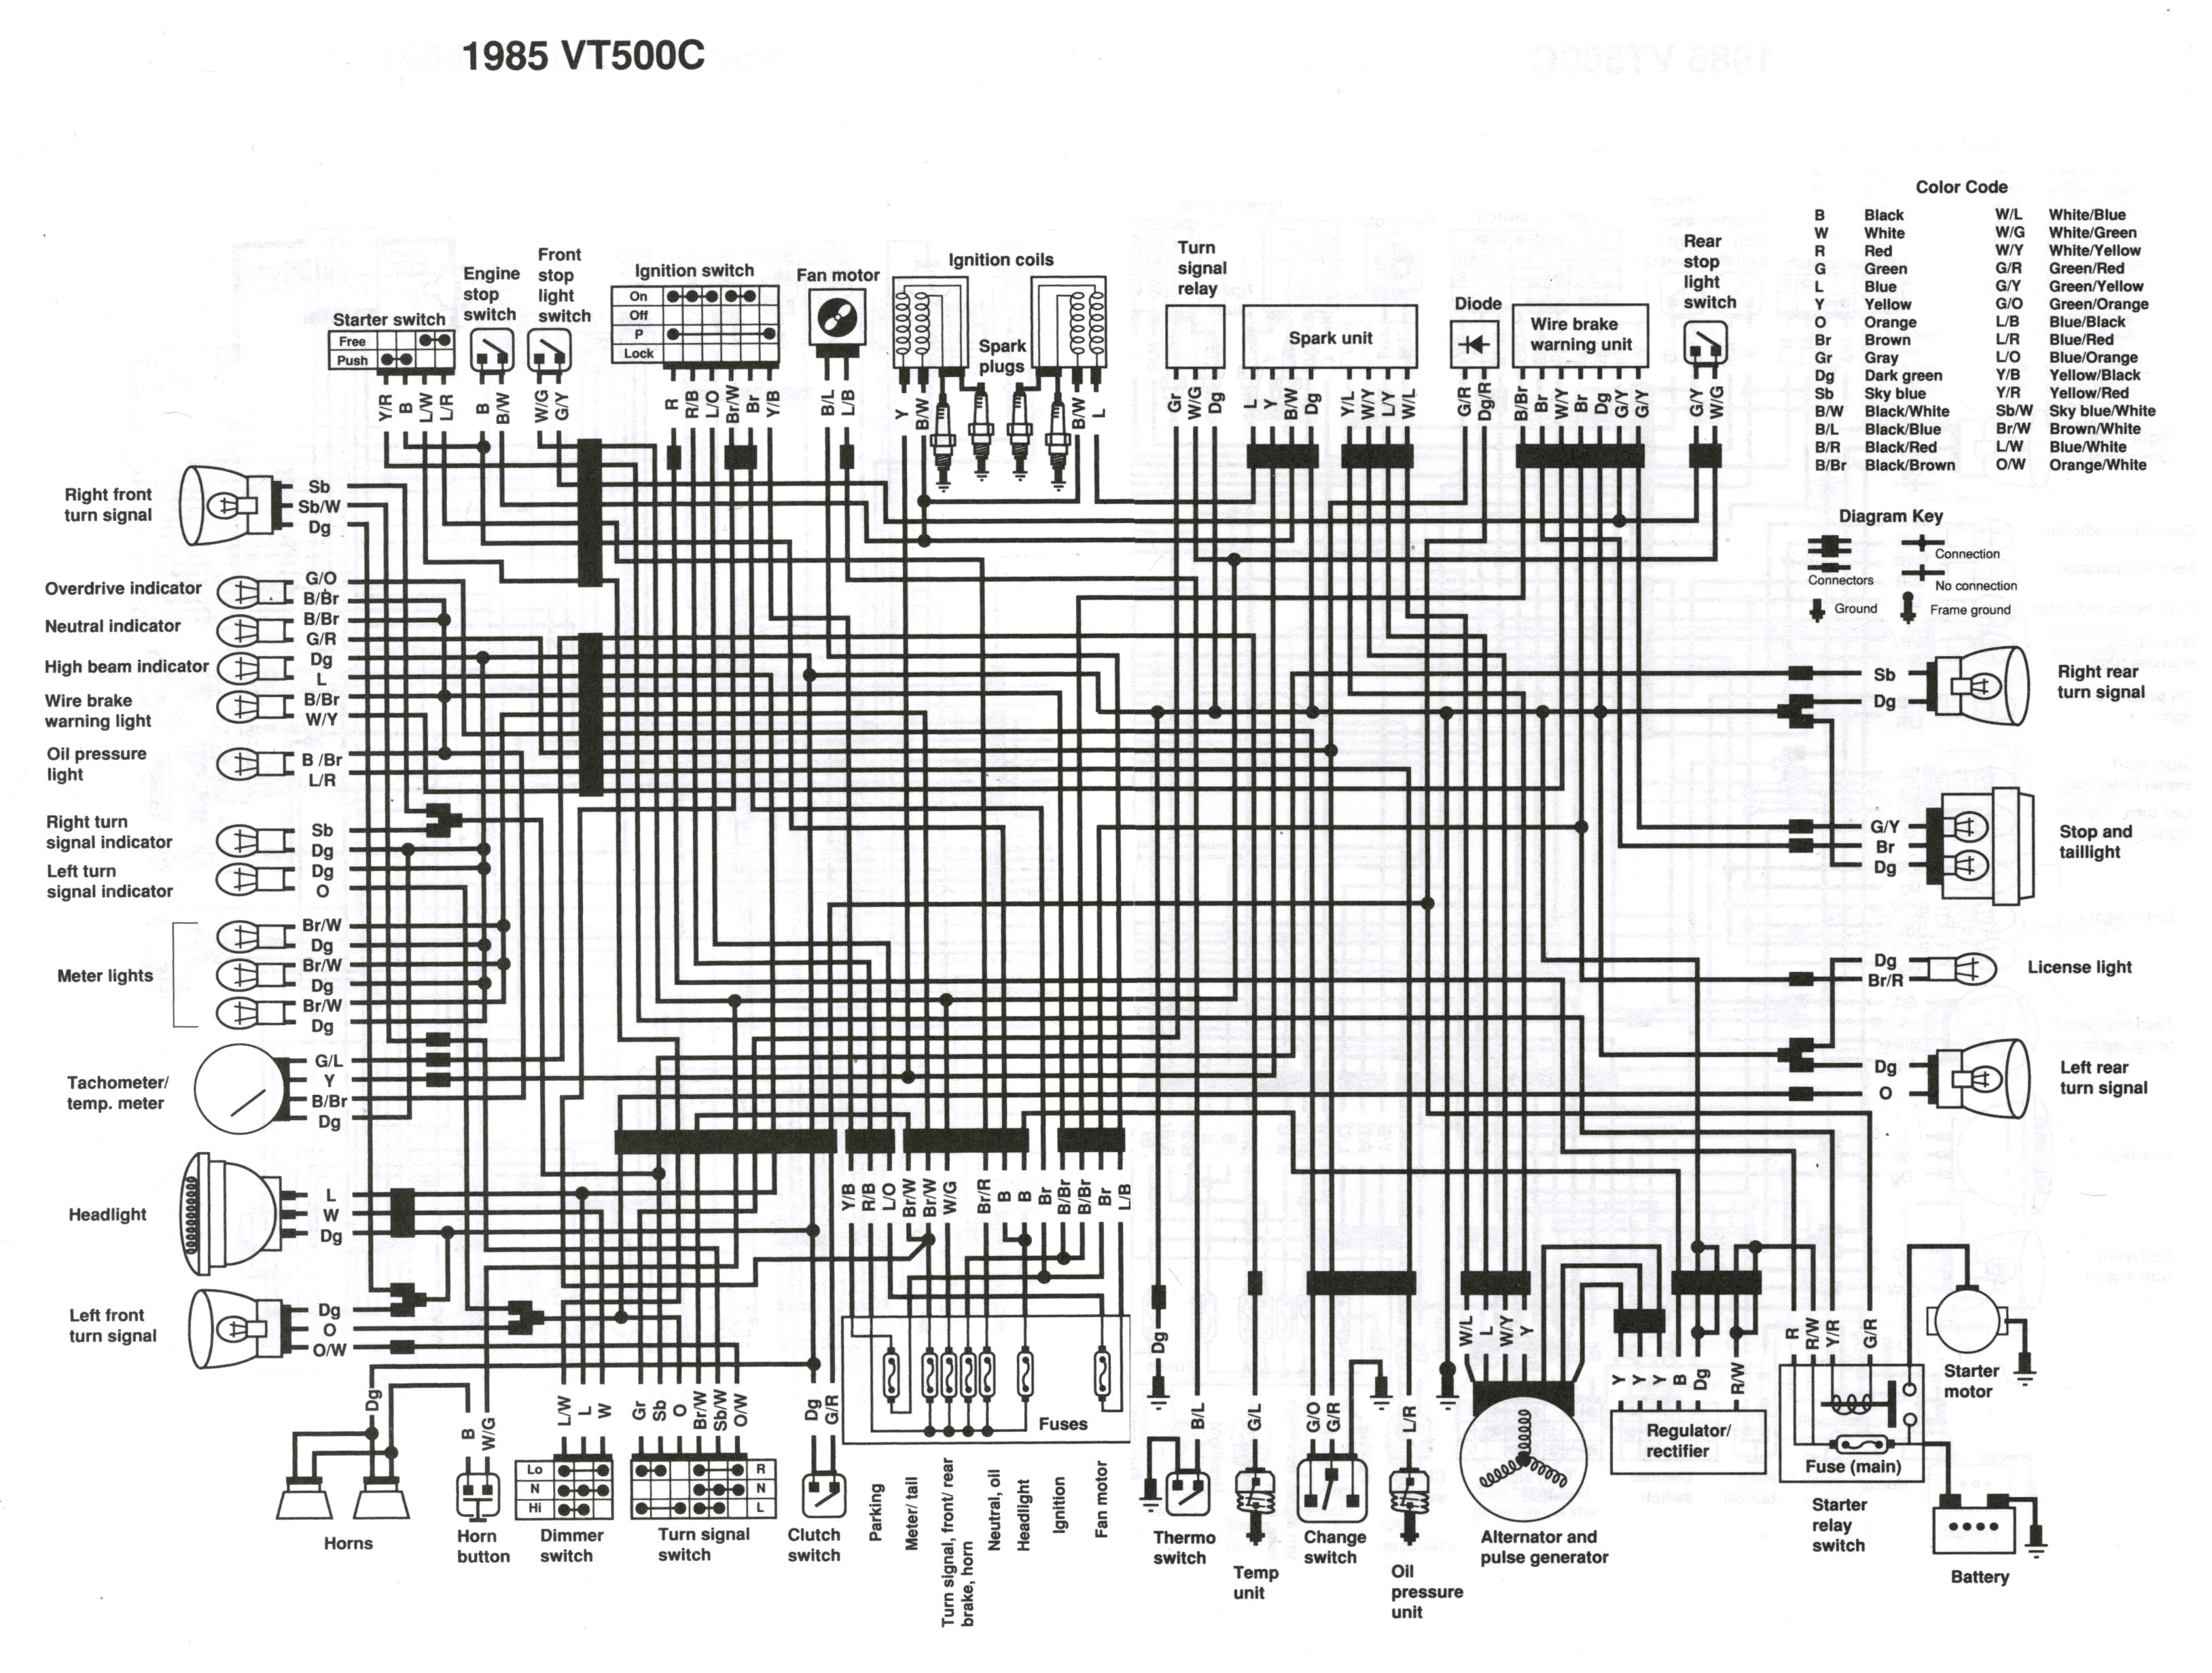 Suzuki Alto 1983 Wiring Diagram Page 2 And Schematics Sx4 Central Locking On Source Vt500